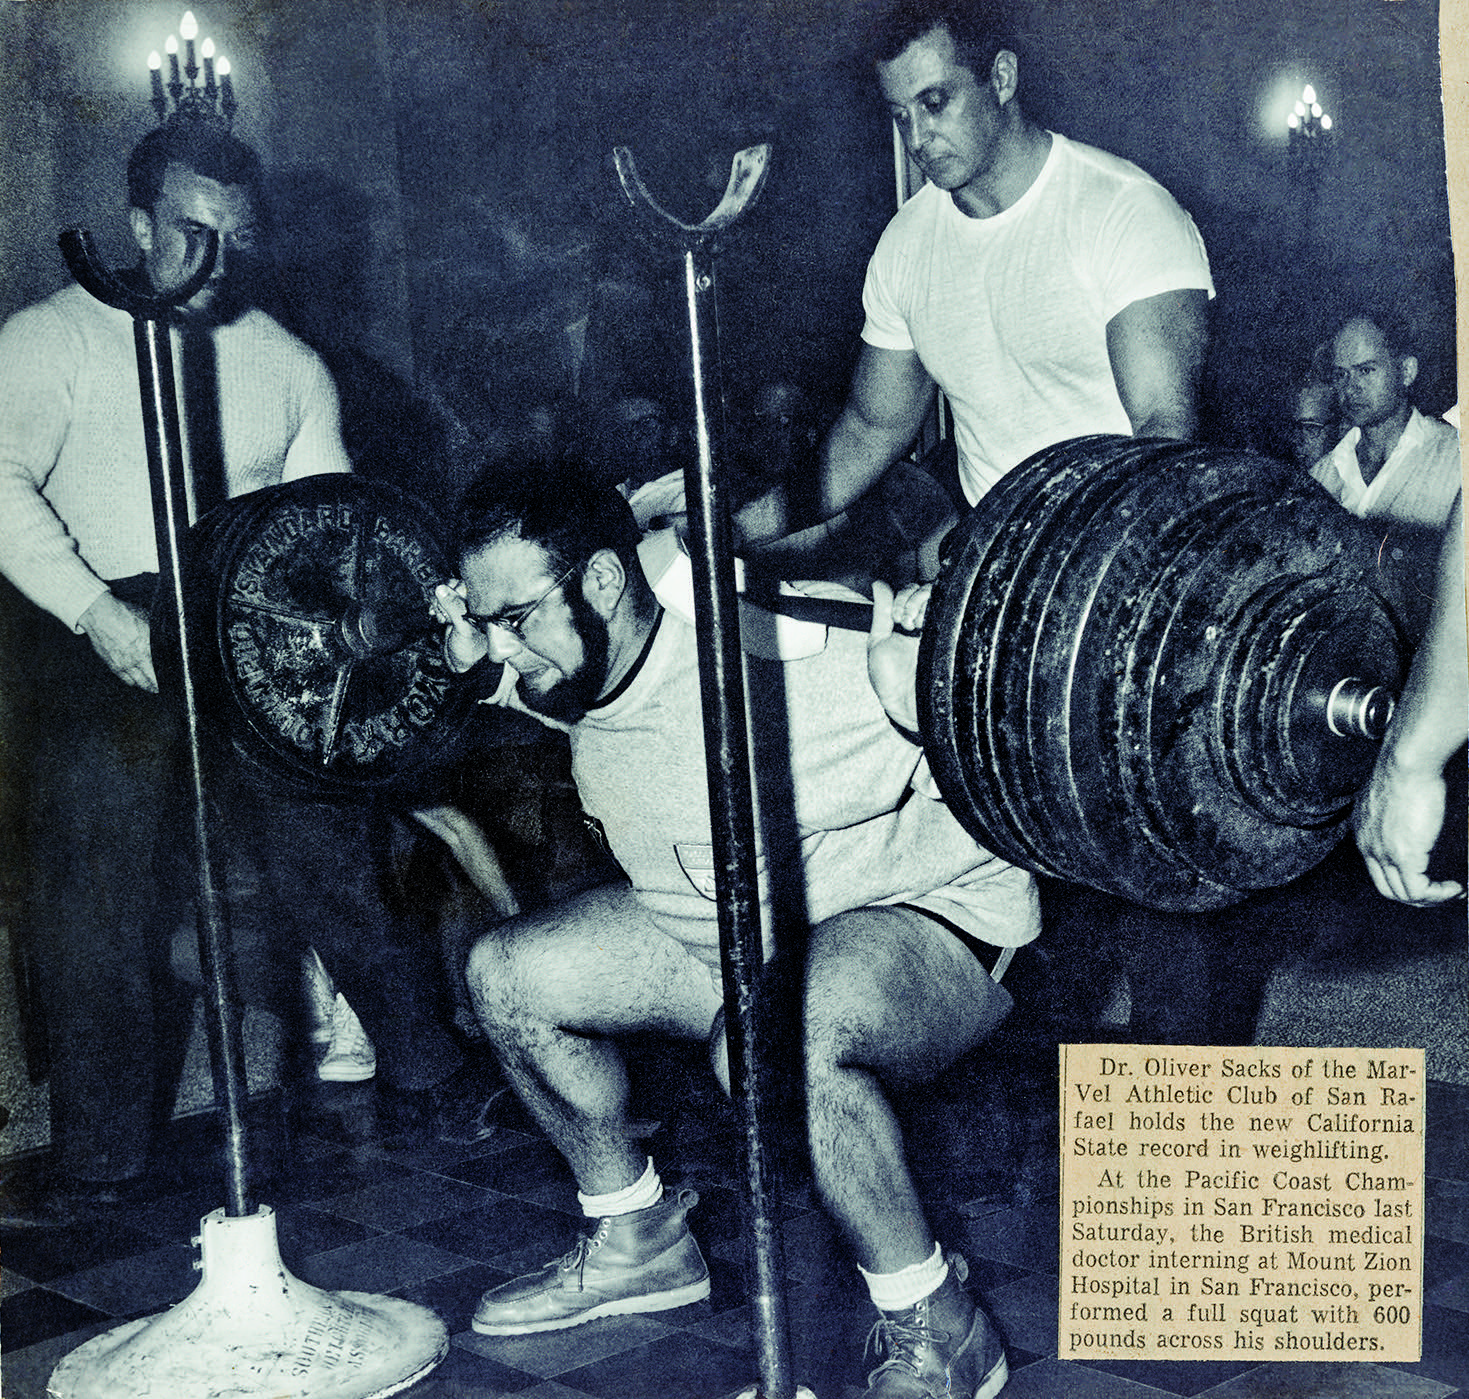 Sacks set a California state record in 1961, performing a full squat with 600 pounds. Photo courtesy of the Oliver Sacks Foundation.